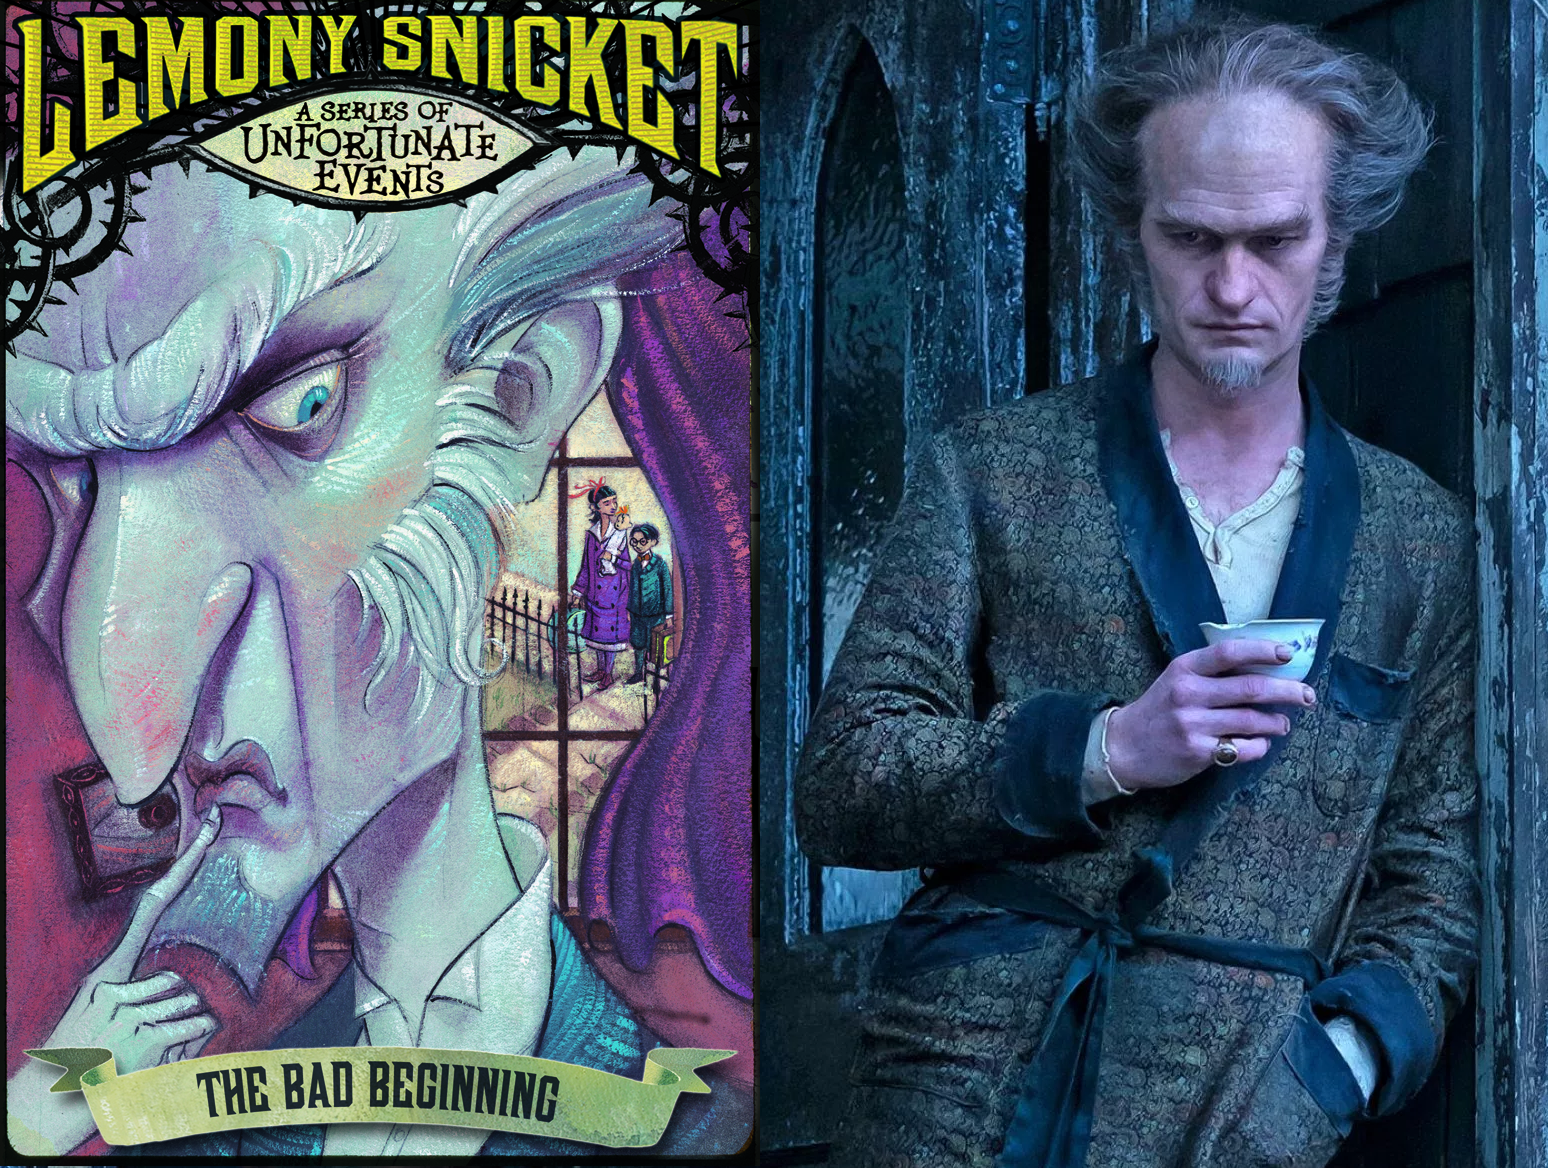 essay on lemony snickets Warning: spoilers lurk below for all 13 books in a series of unfortunate events by lemony snicket when netflix announced that it would be adapting lemony snicket's a series of unfortunate events.